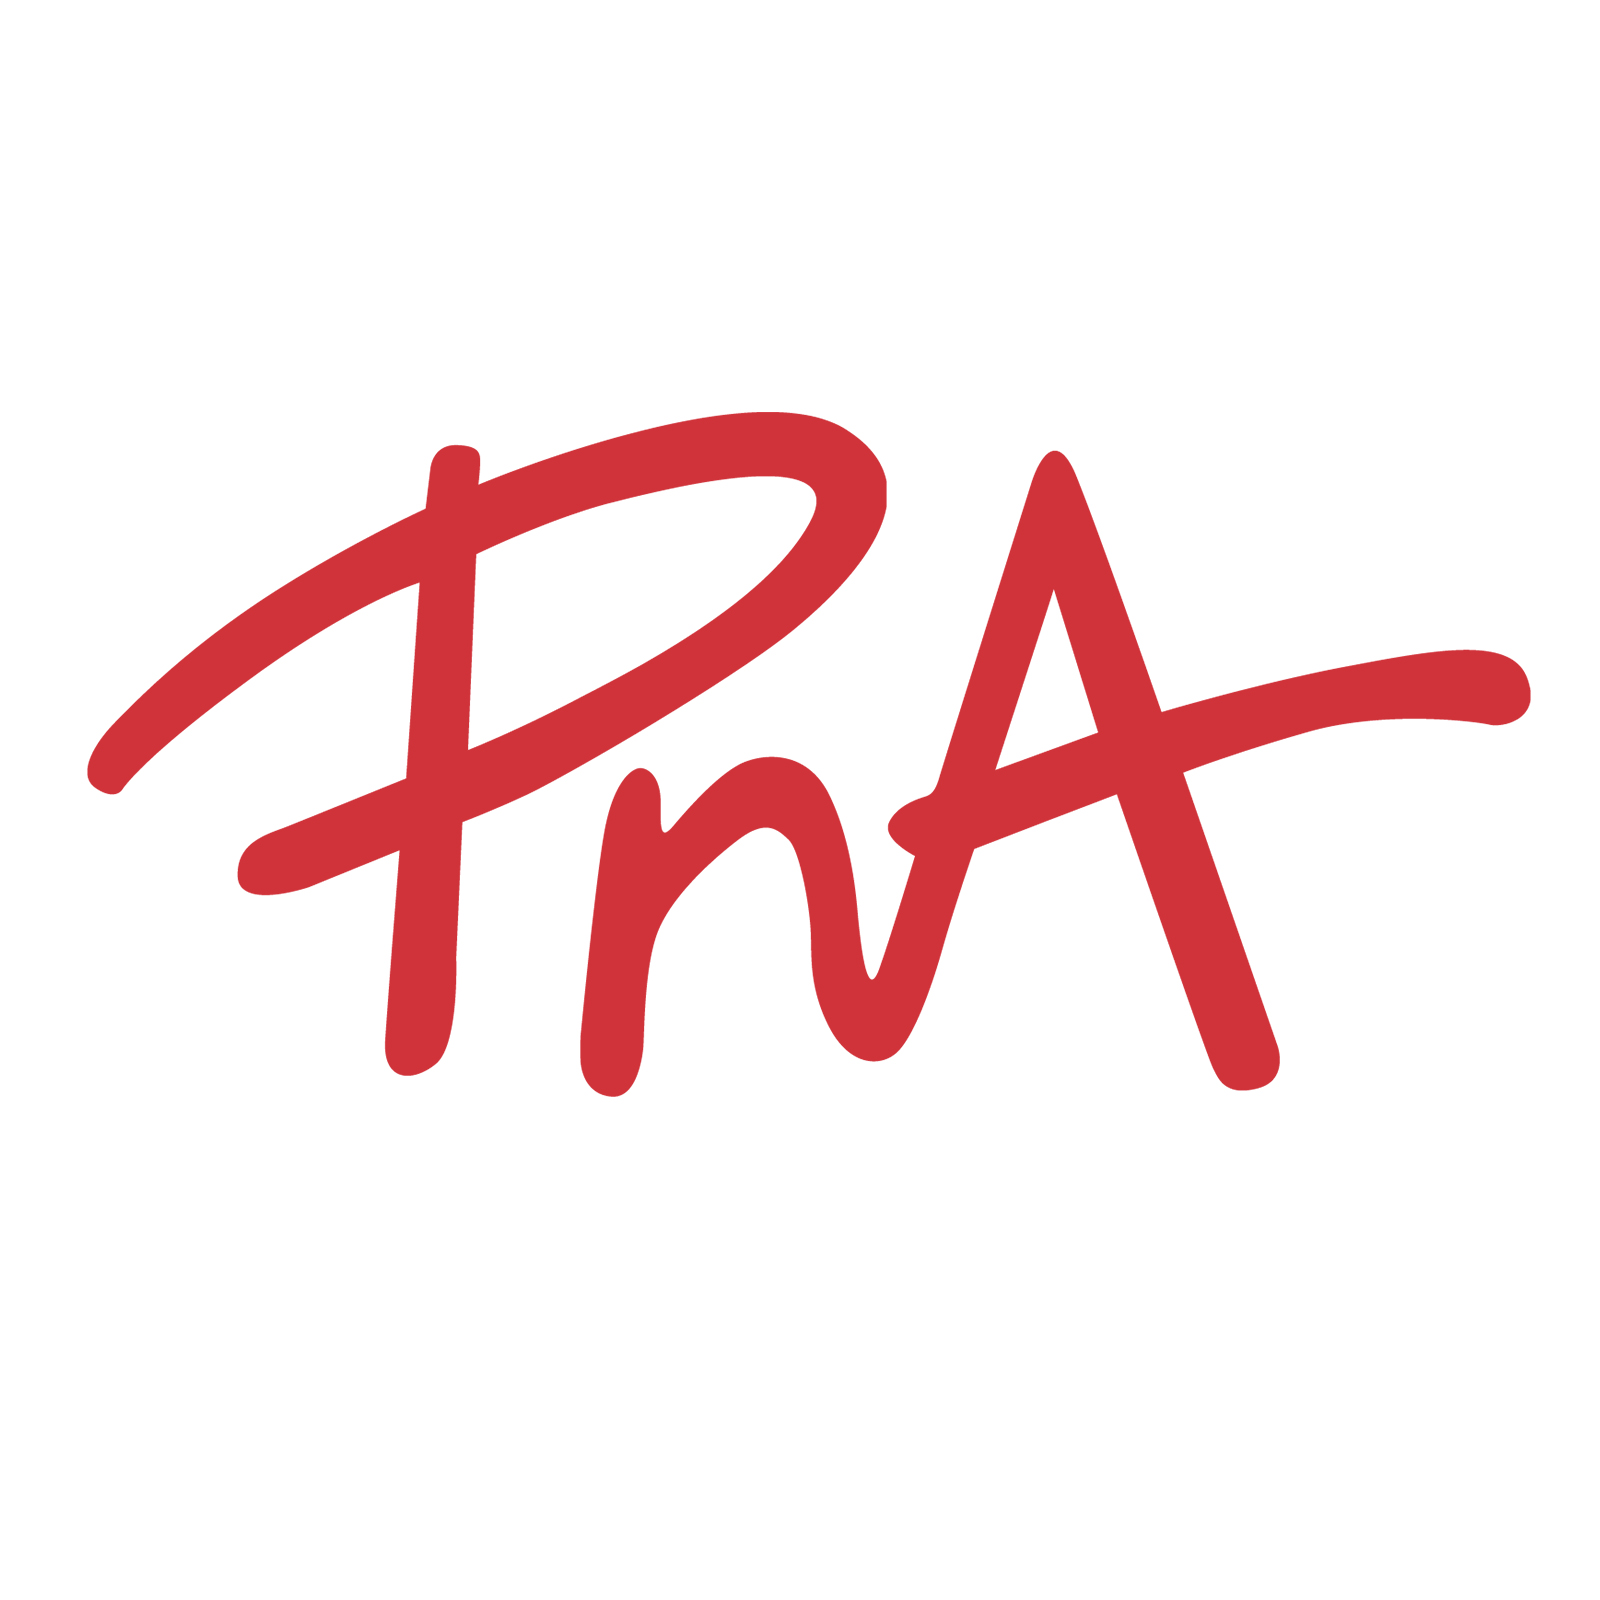 the PNA stationary logo for the realise a dream competition to support local entrepreneurs in the food industry in cape town